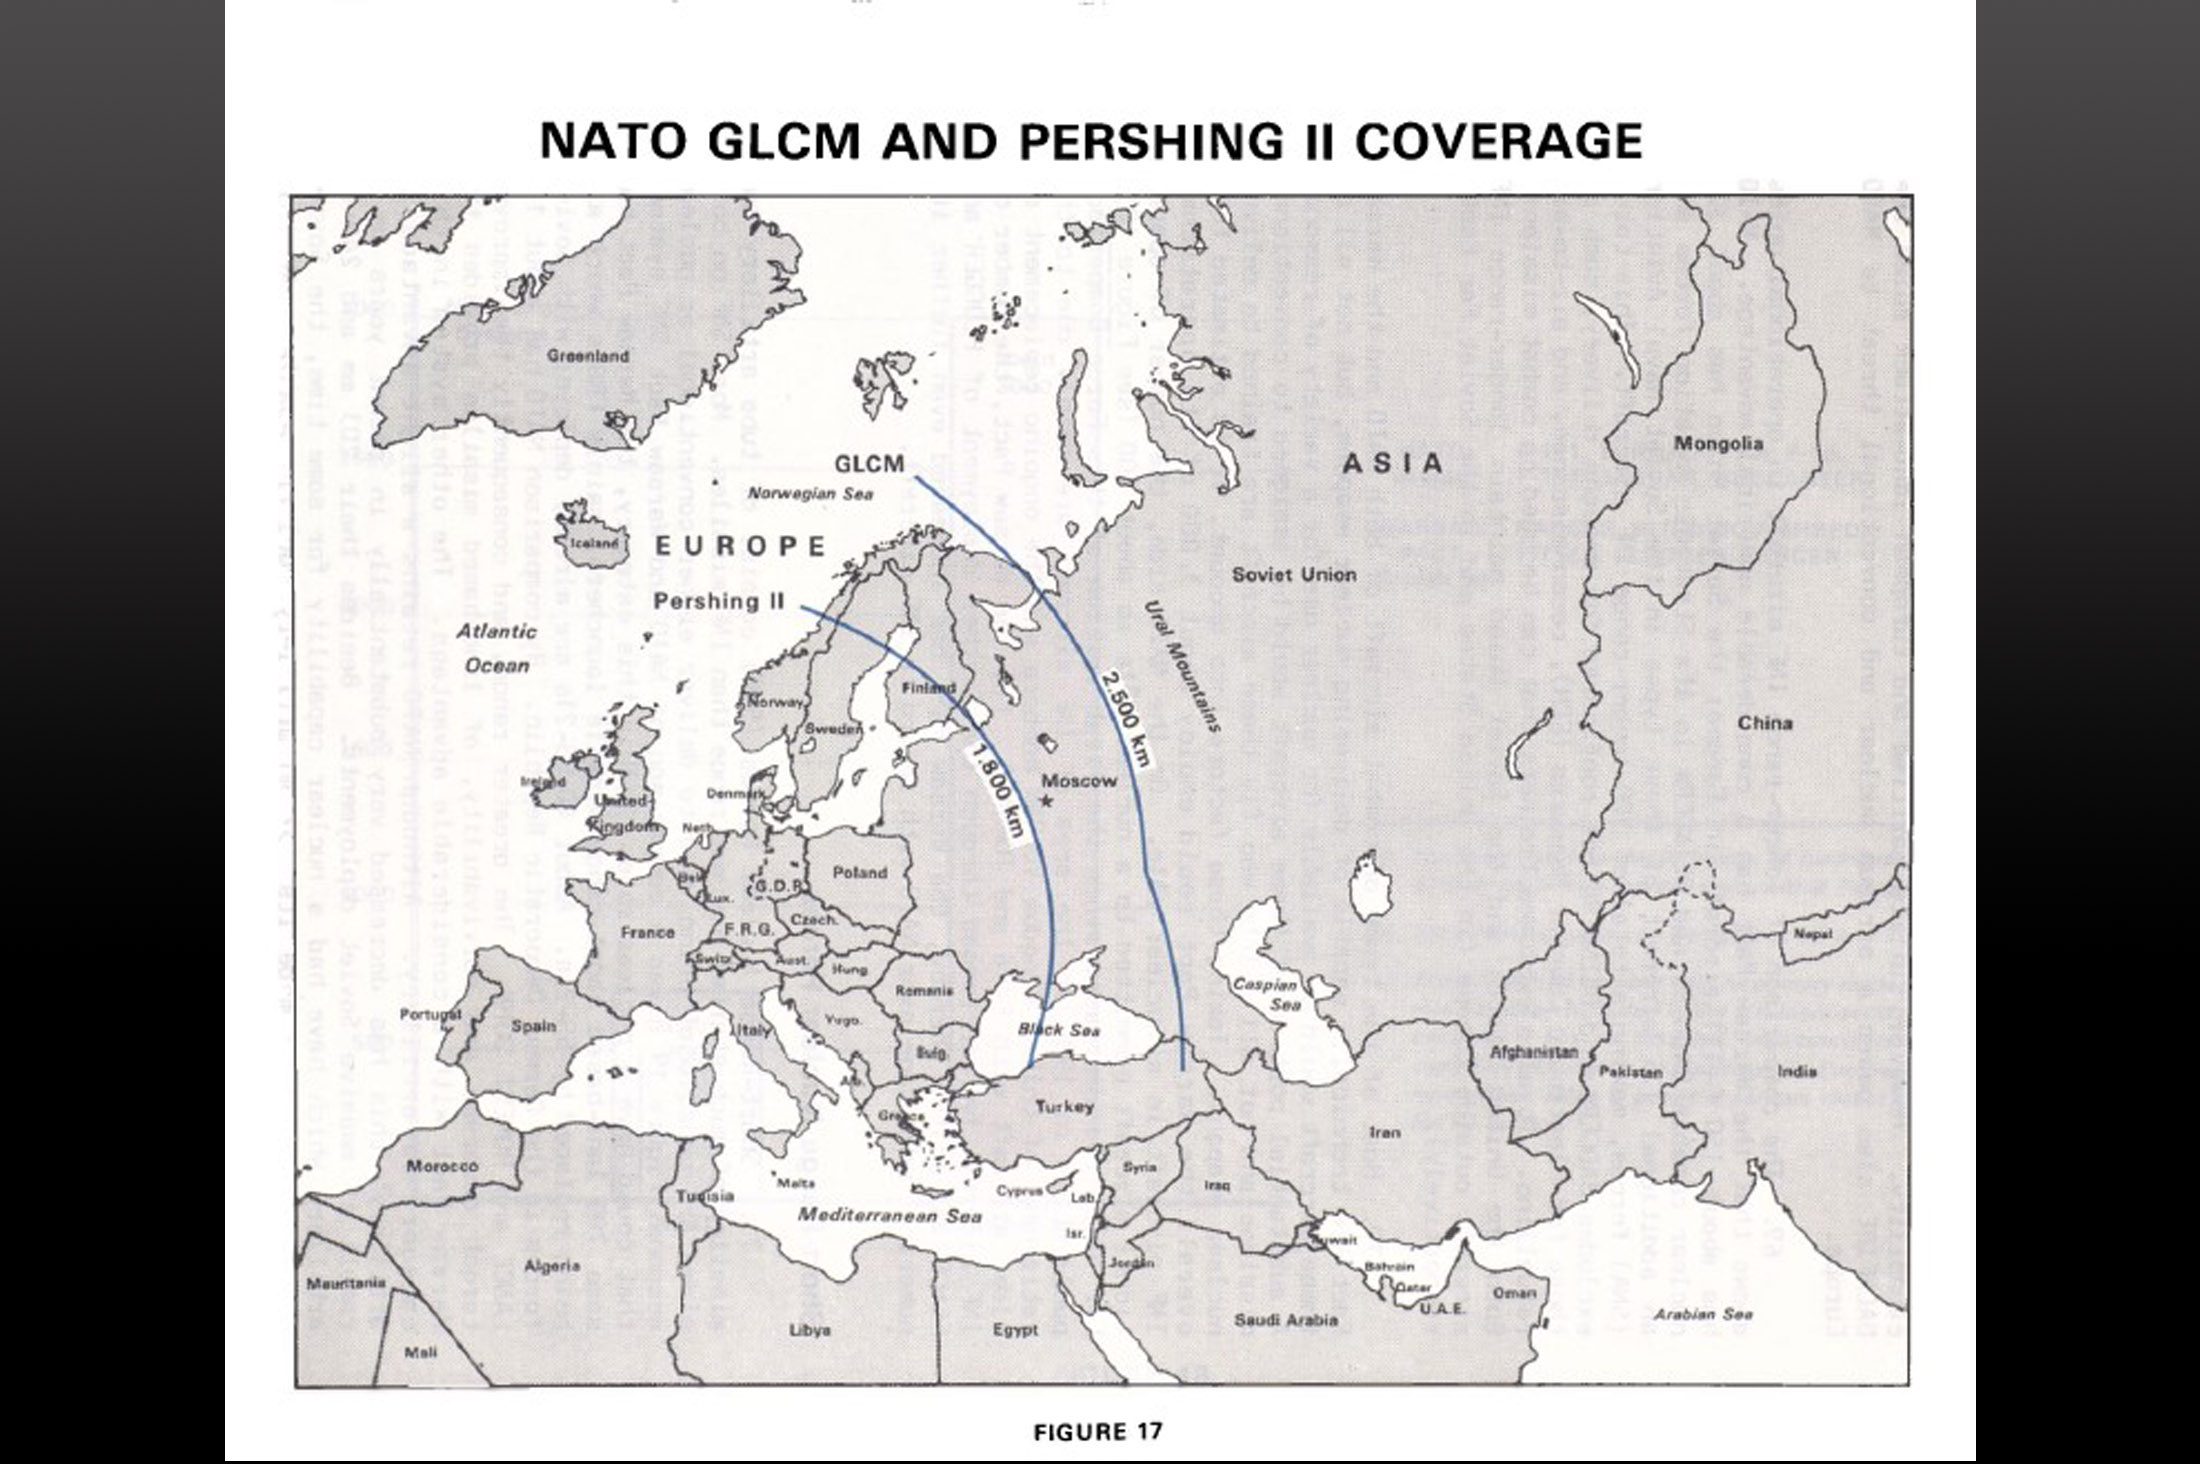 NATO GLCM and Pershing II coverage